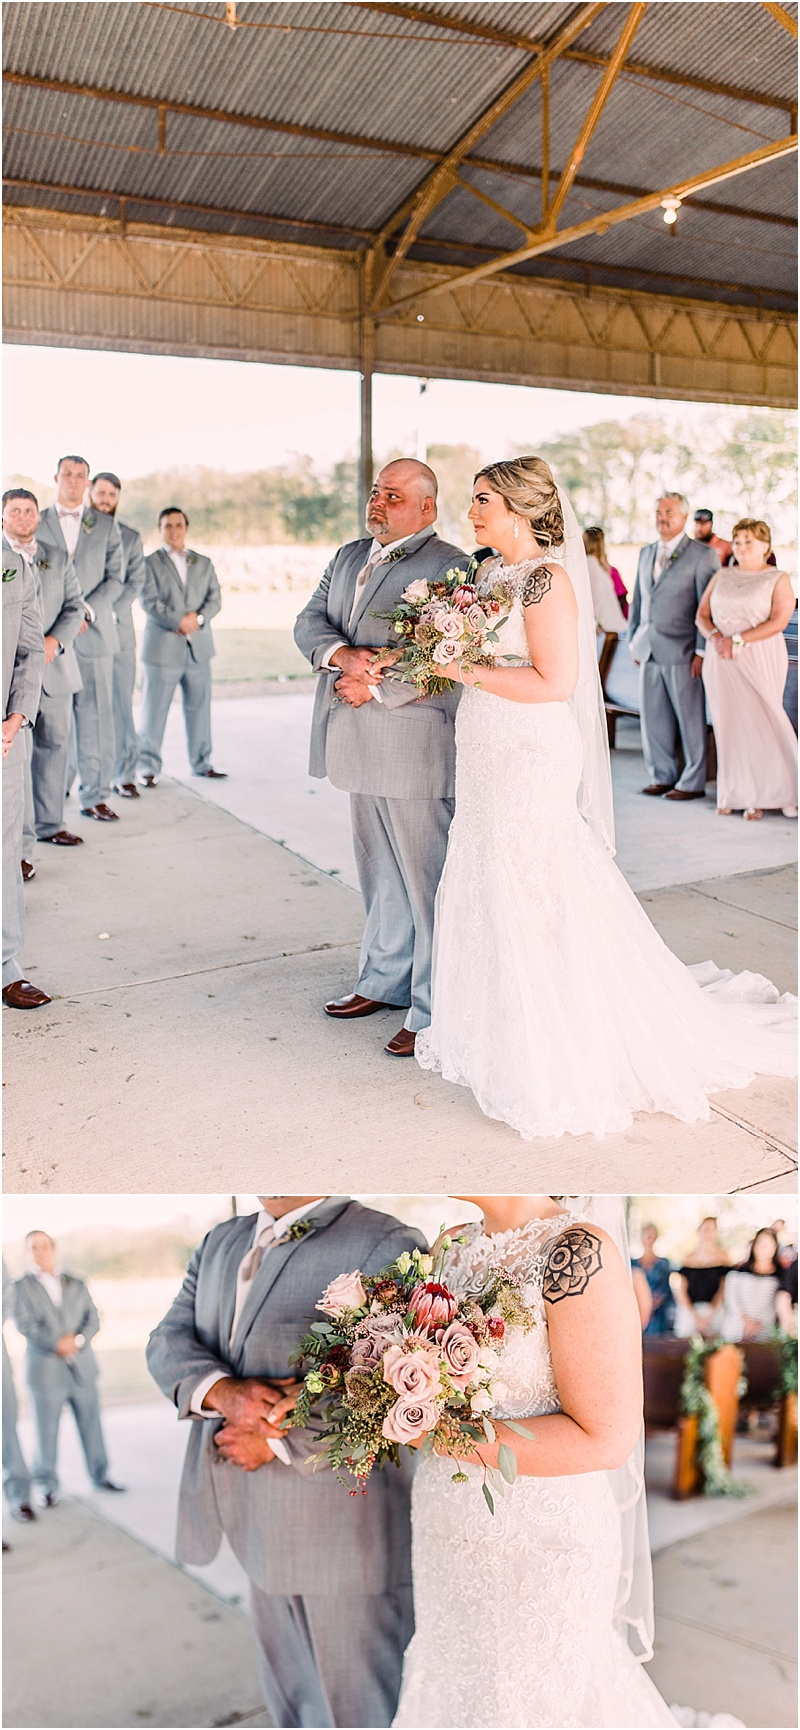 www.whitneykrenek.com :: Kristen Dixie Gin Wedding. Shreveport Wedding Photographer24.jpg